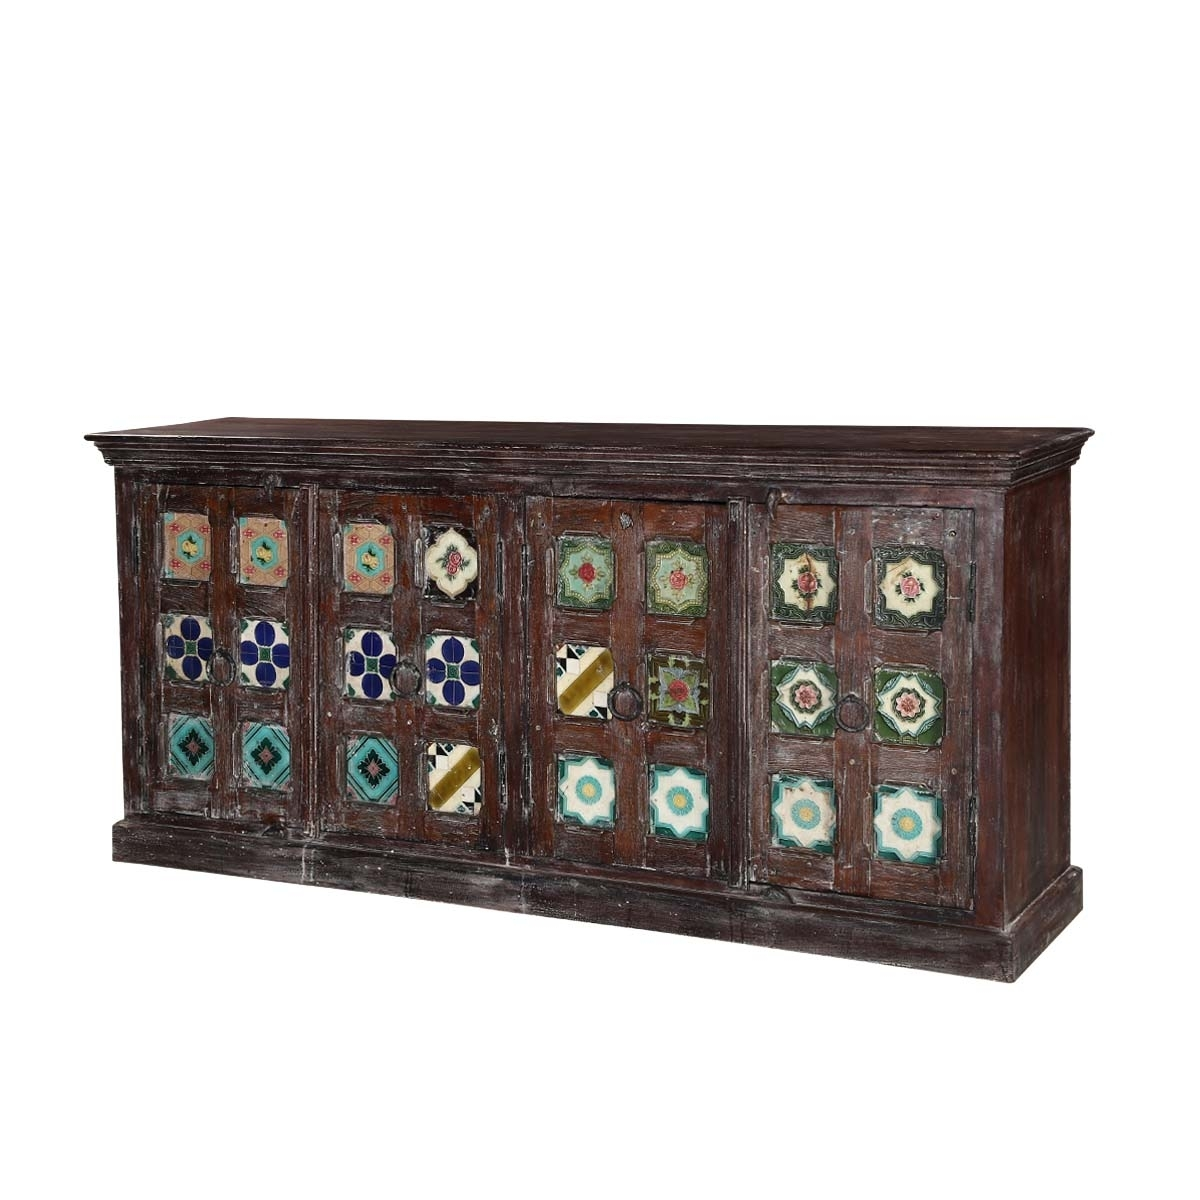 Rosen Tile Medallion Reclaimed Wood 4 Door Buffet Sideboard Cabinet with Vintage Finish 4-Door Sideboards (Image 18 of 30)